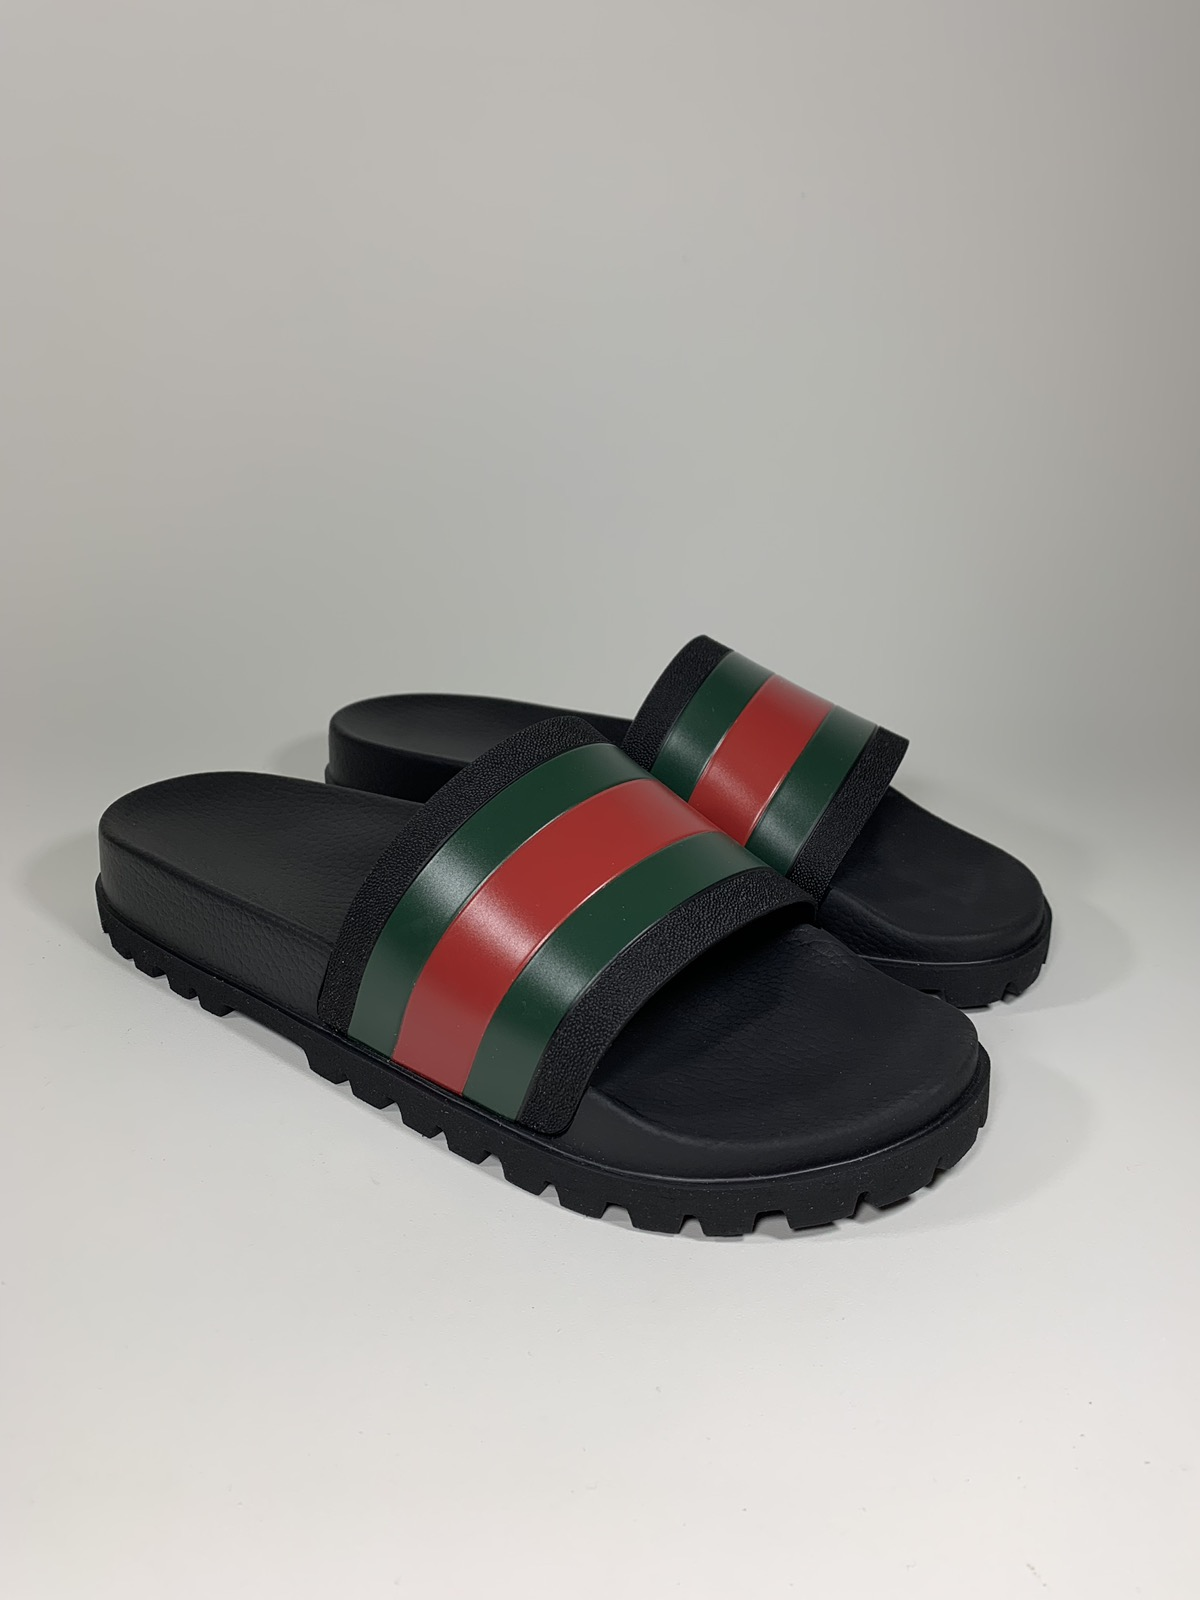 f63ab724703f Gucci Gucci Pursuit Treck Slide Sandal Size 14us 13uk